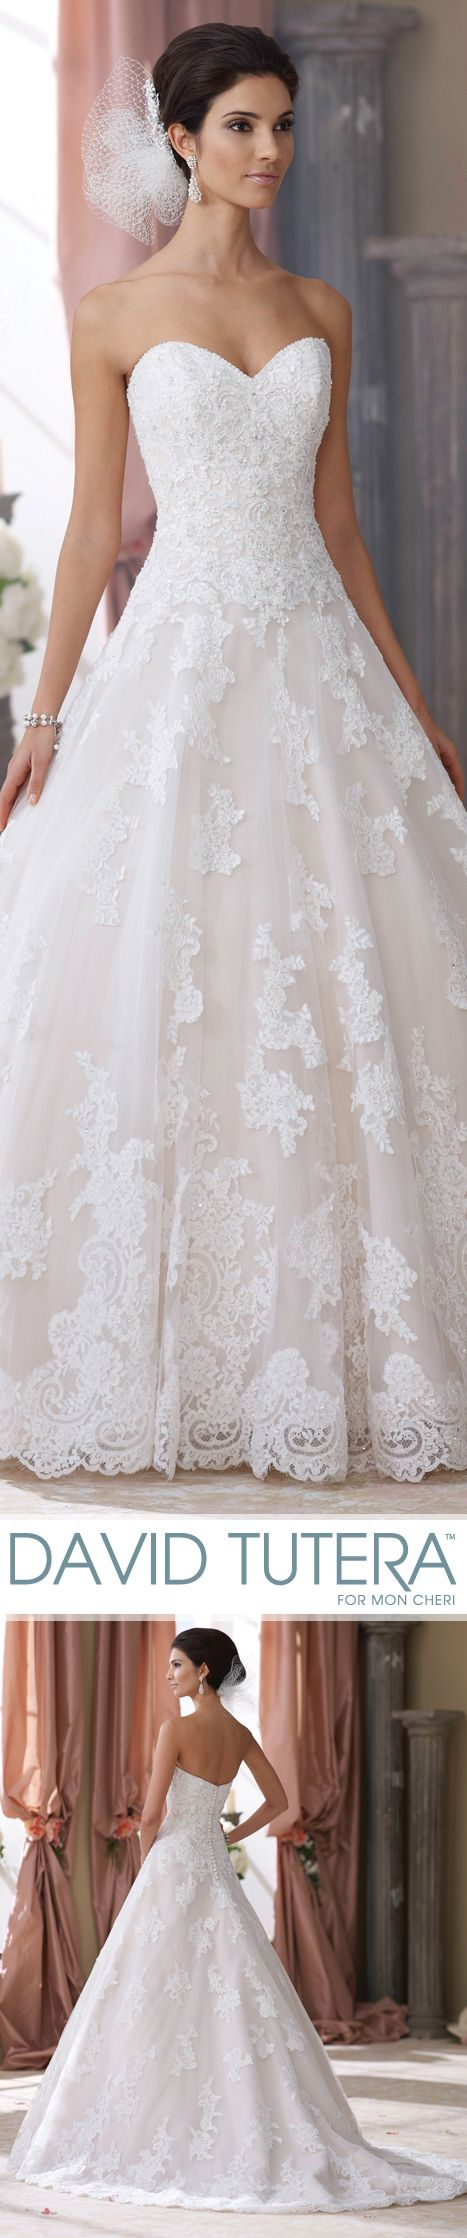 Style no wyomia wedding dresses collection